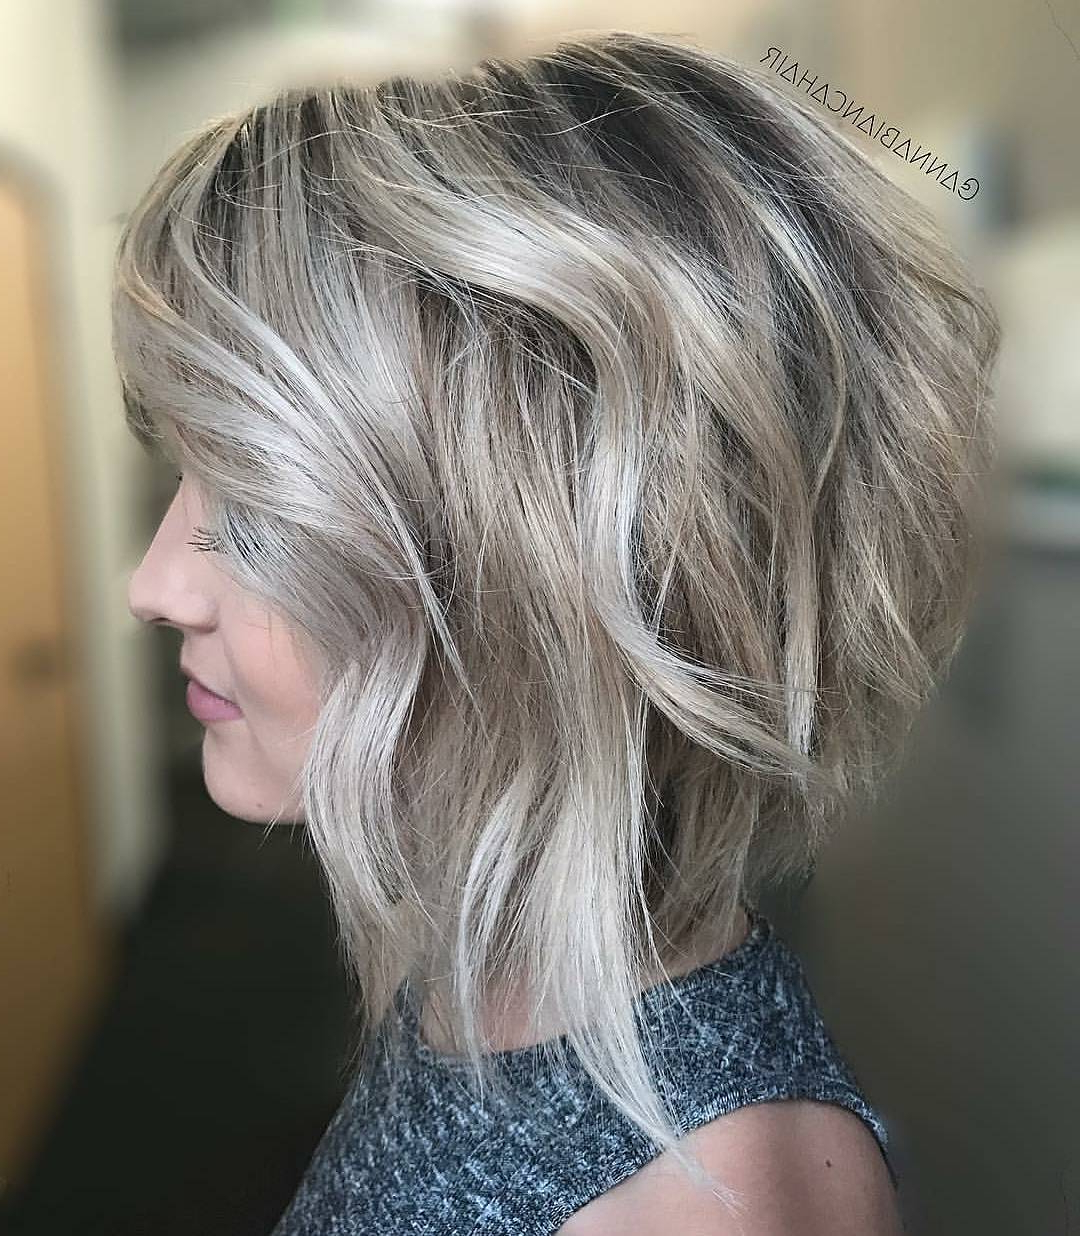 10 Messy Hairstyles For Short Hair – Quick Chic! Women Short Haircut In Short Ruffled Hairstyles With Blonde Highlights (View 13 of 20)